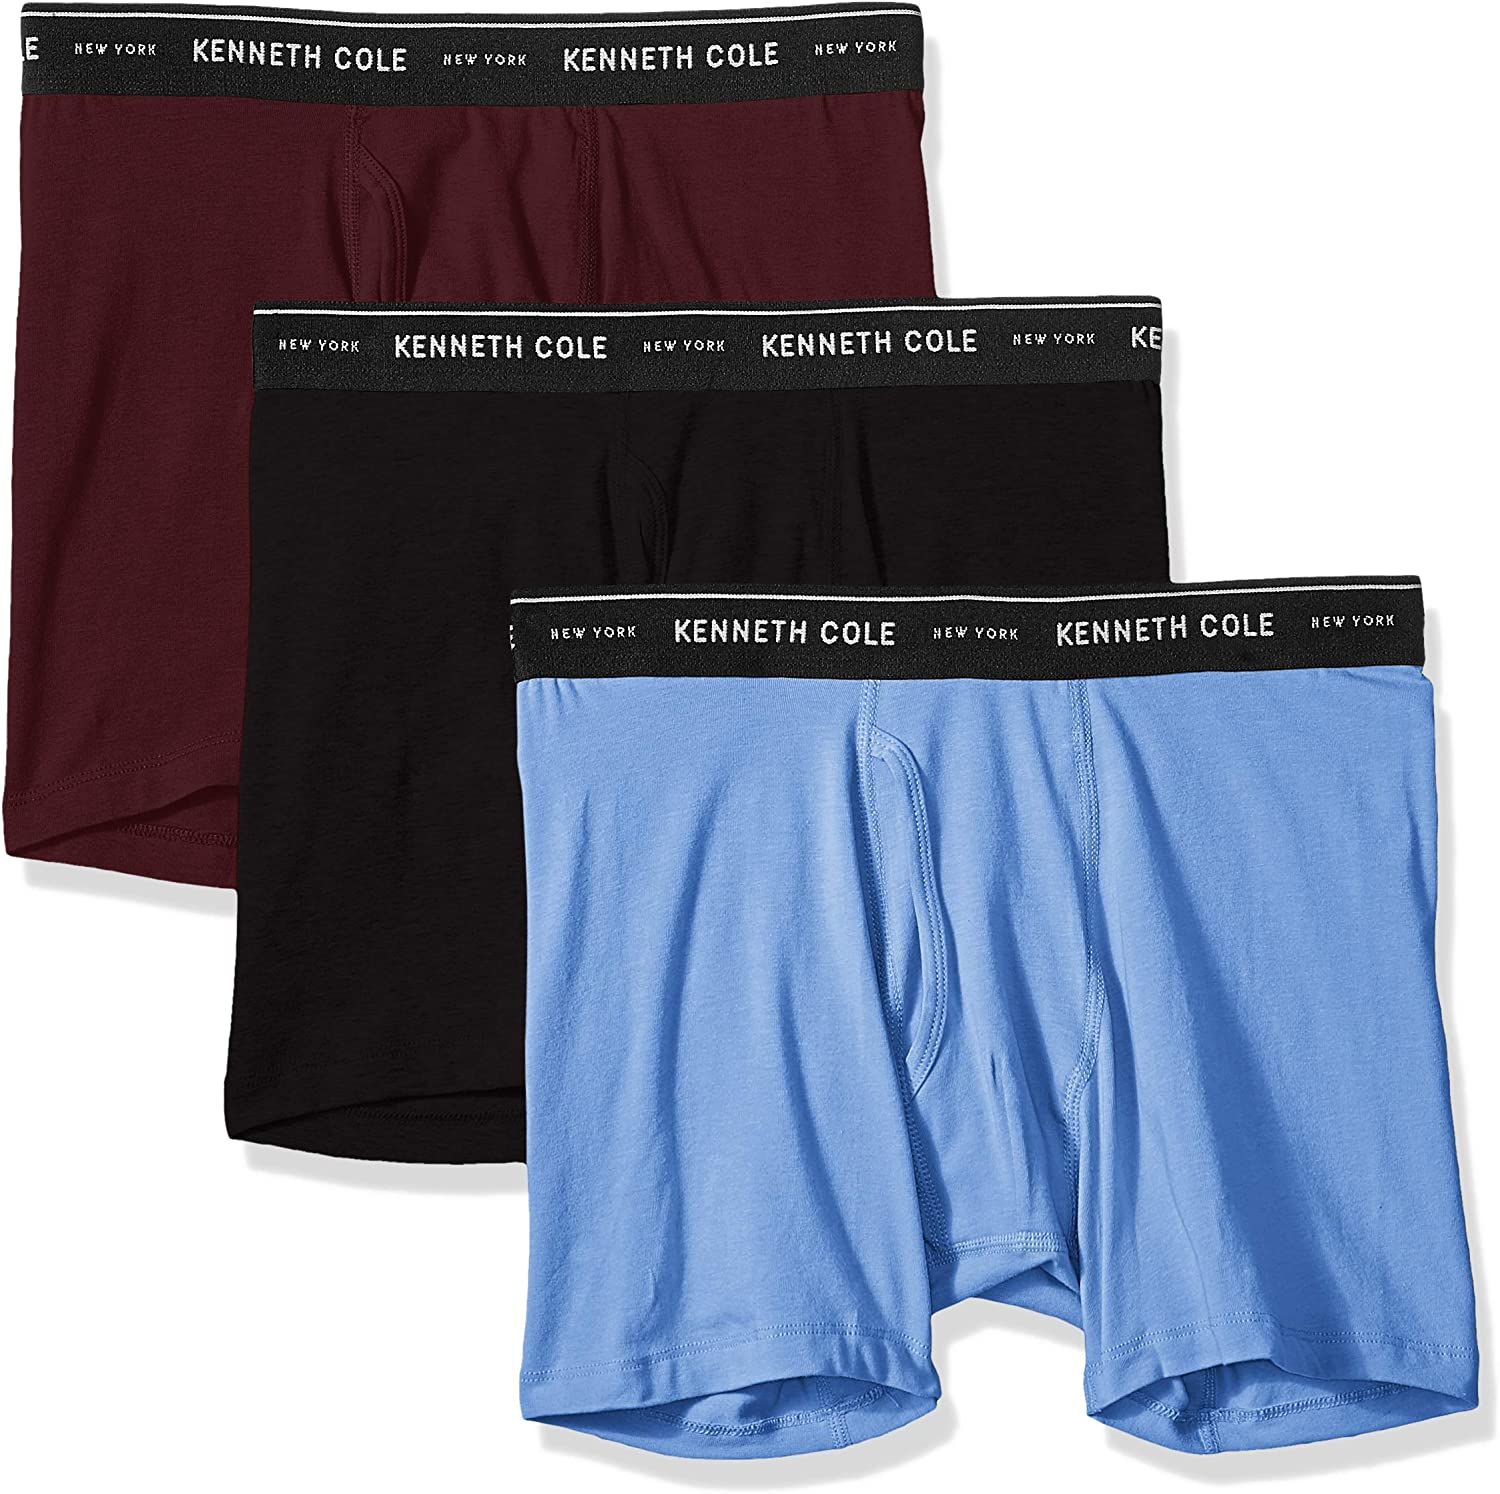 Kenneth Cole New York Men's Underwear Cotton Stretch Boxer Brief, Multipack & Single